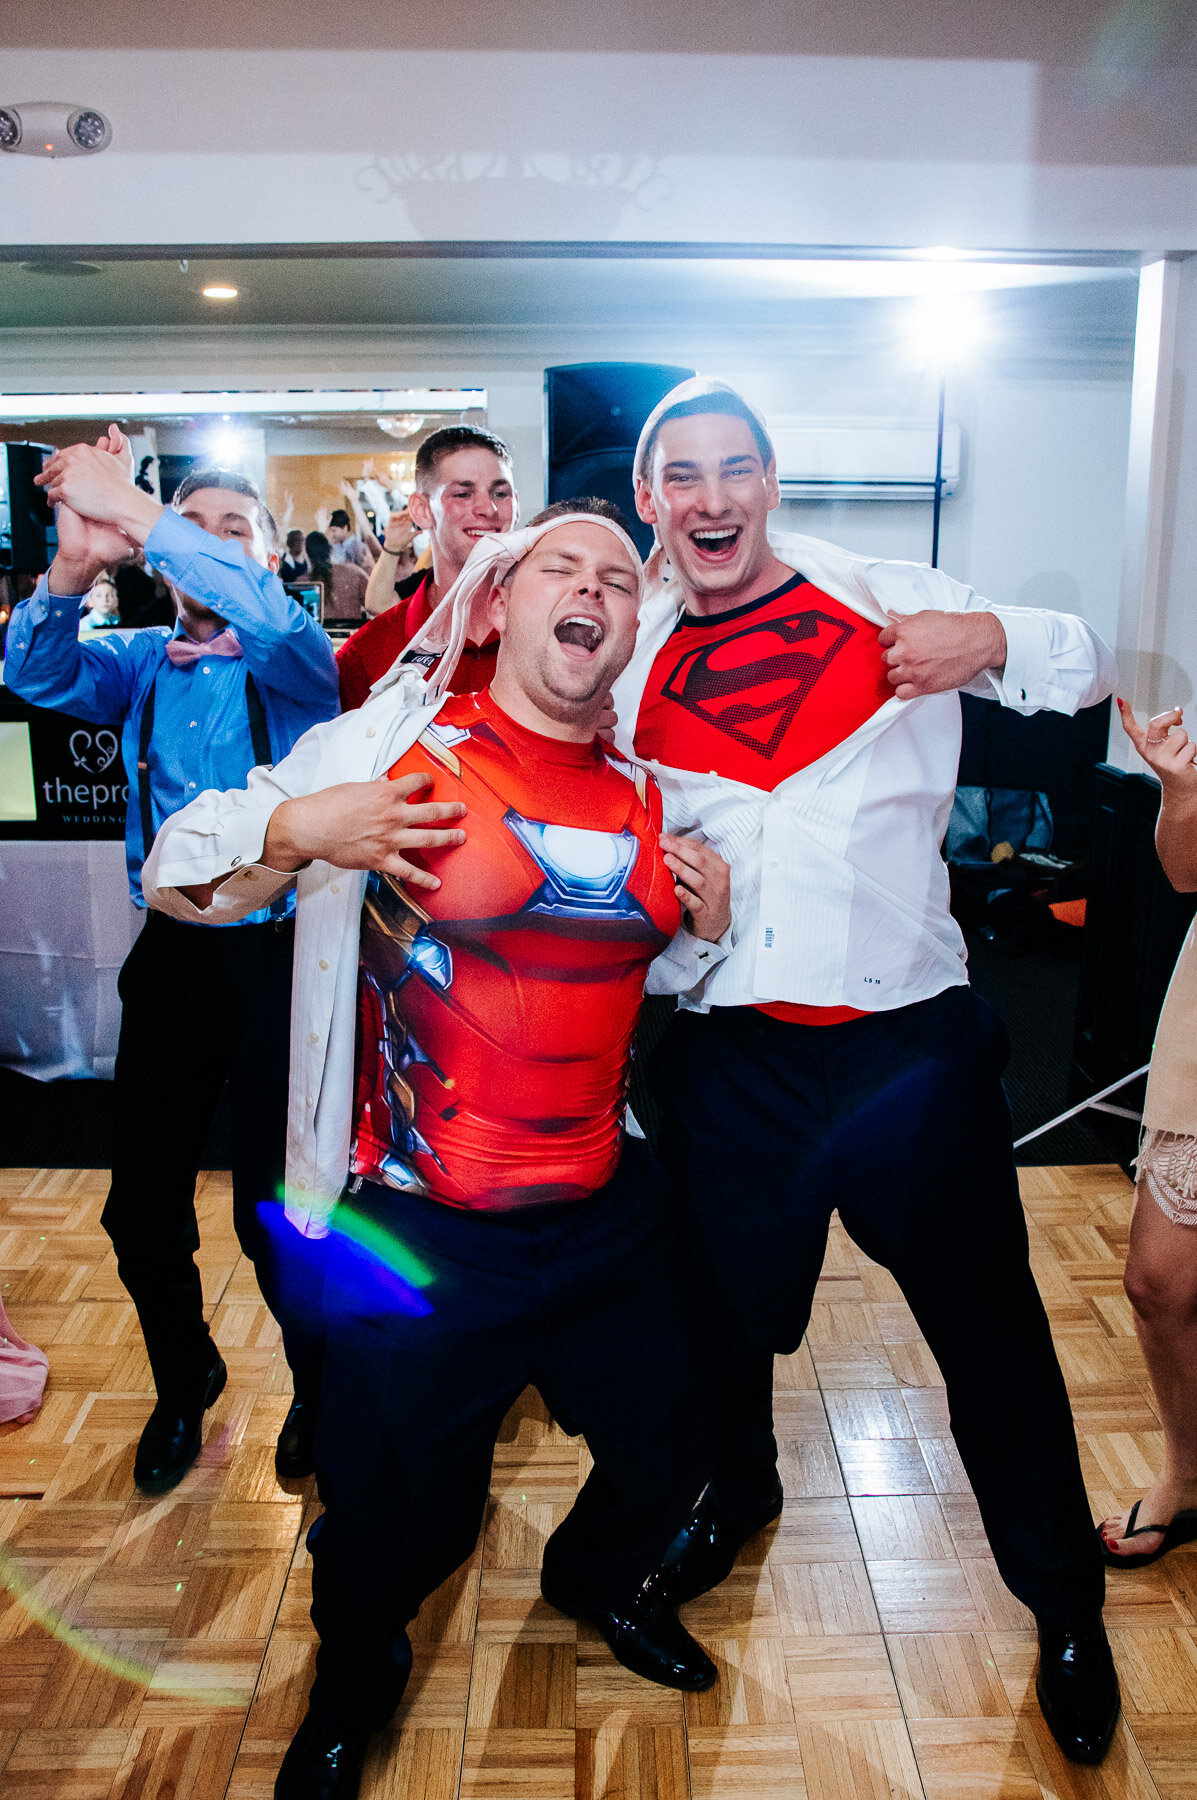 After hours of dancing, it does get hot! The groomsmen ripped off their shirts, showing some superhero love at Latitudes on the River